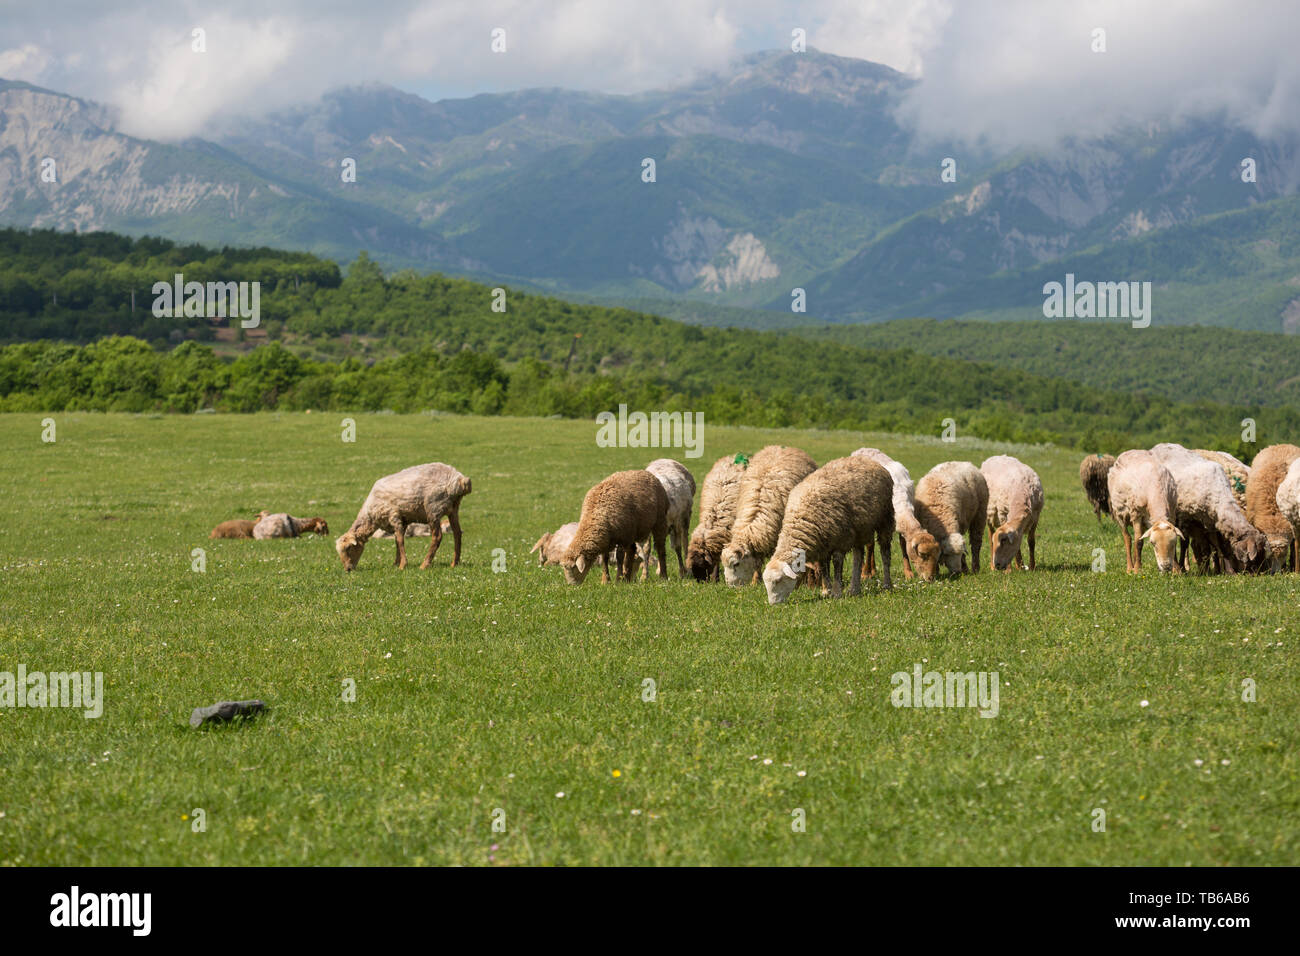 Sheeps on the alp fields. A sheeps is sitting at an alpine meadow in the alps. - Stock Image